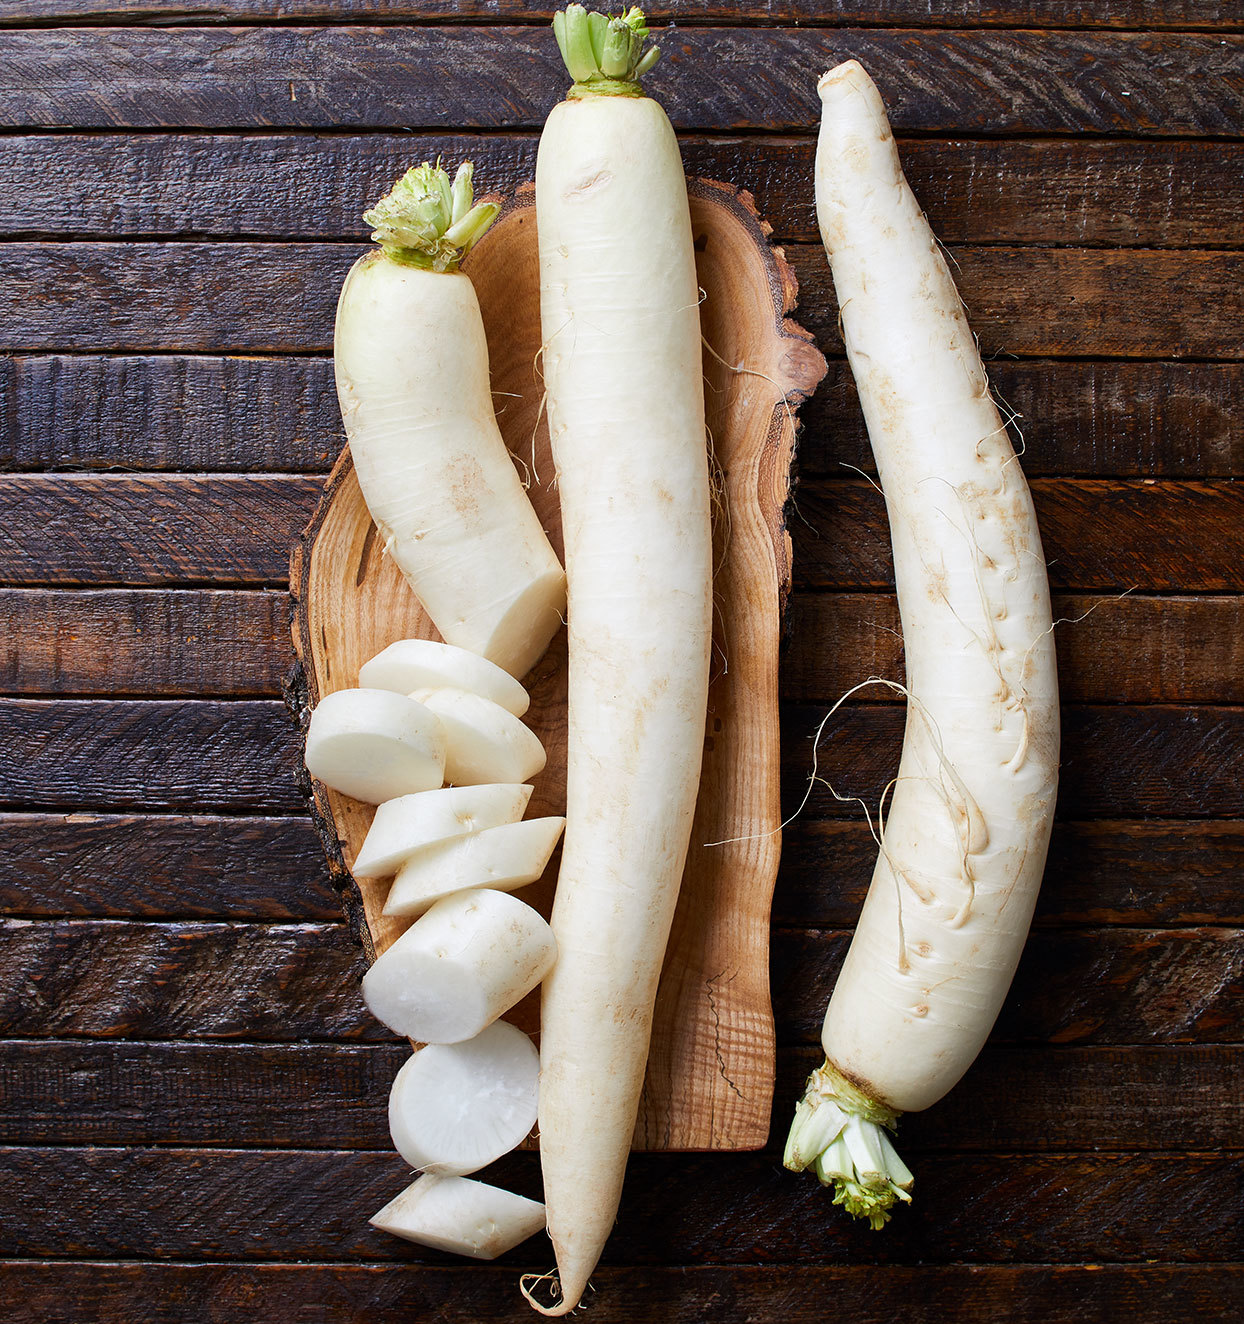 What Is Daikon and How Can I Use It?